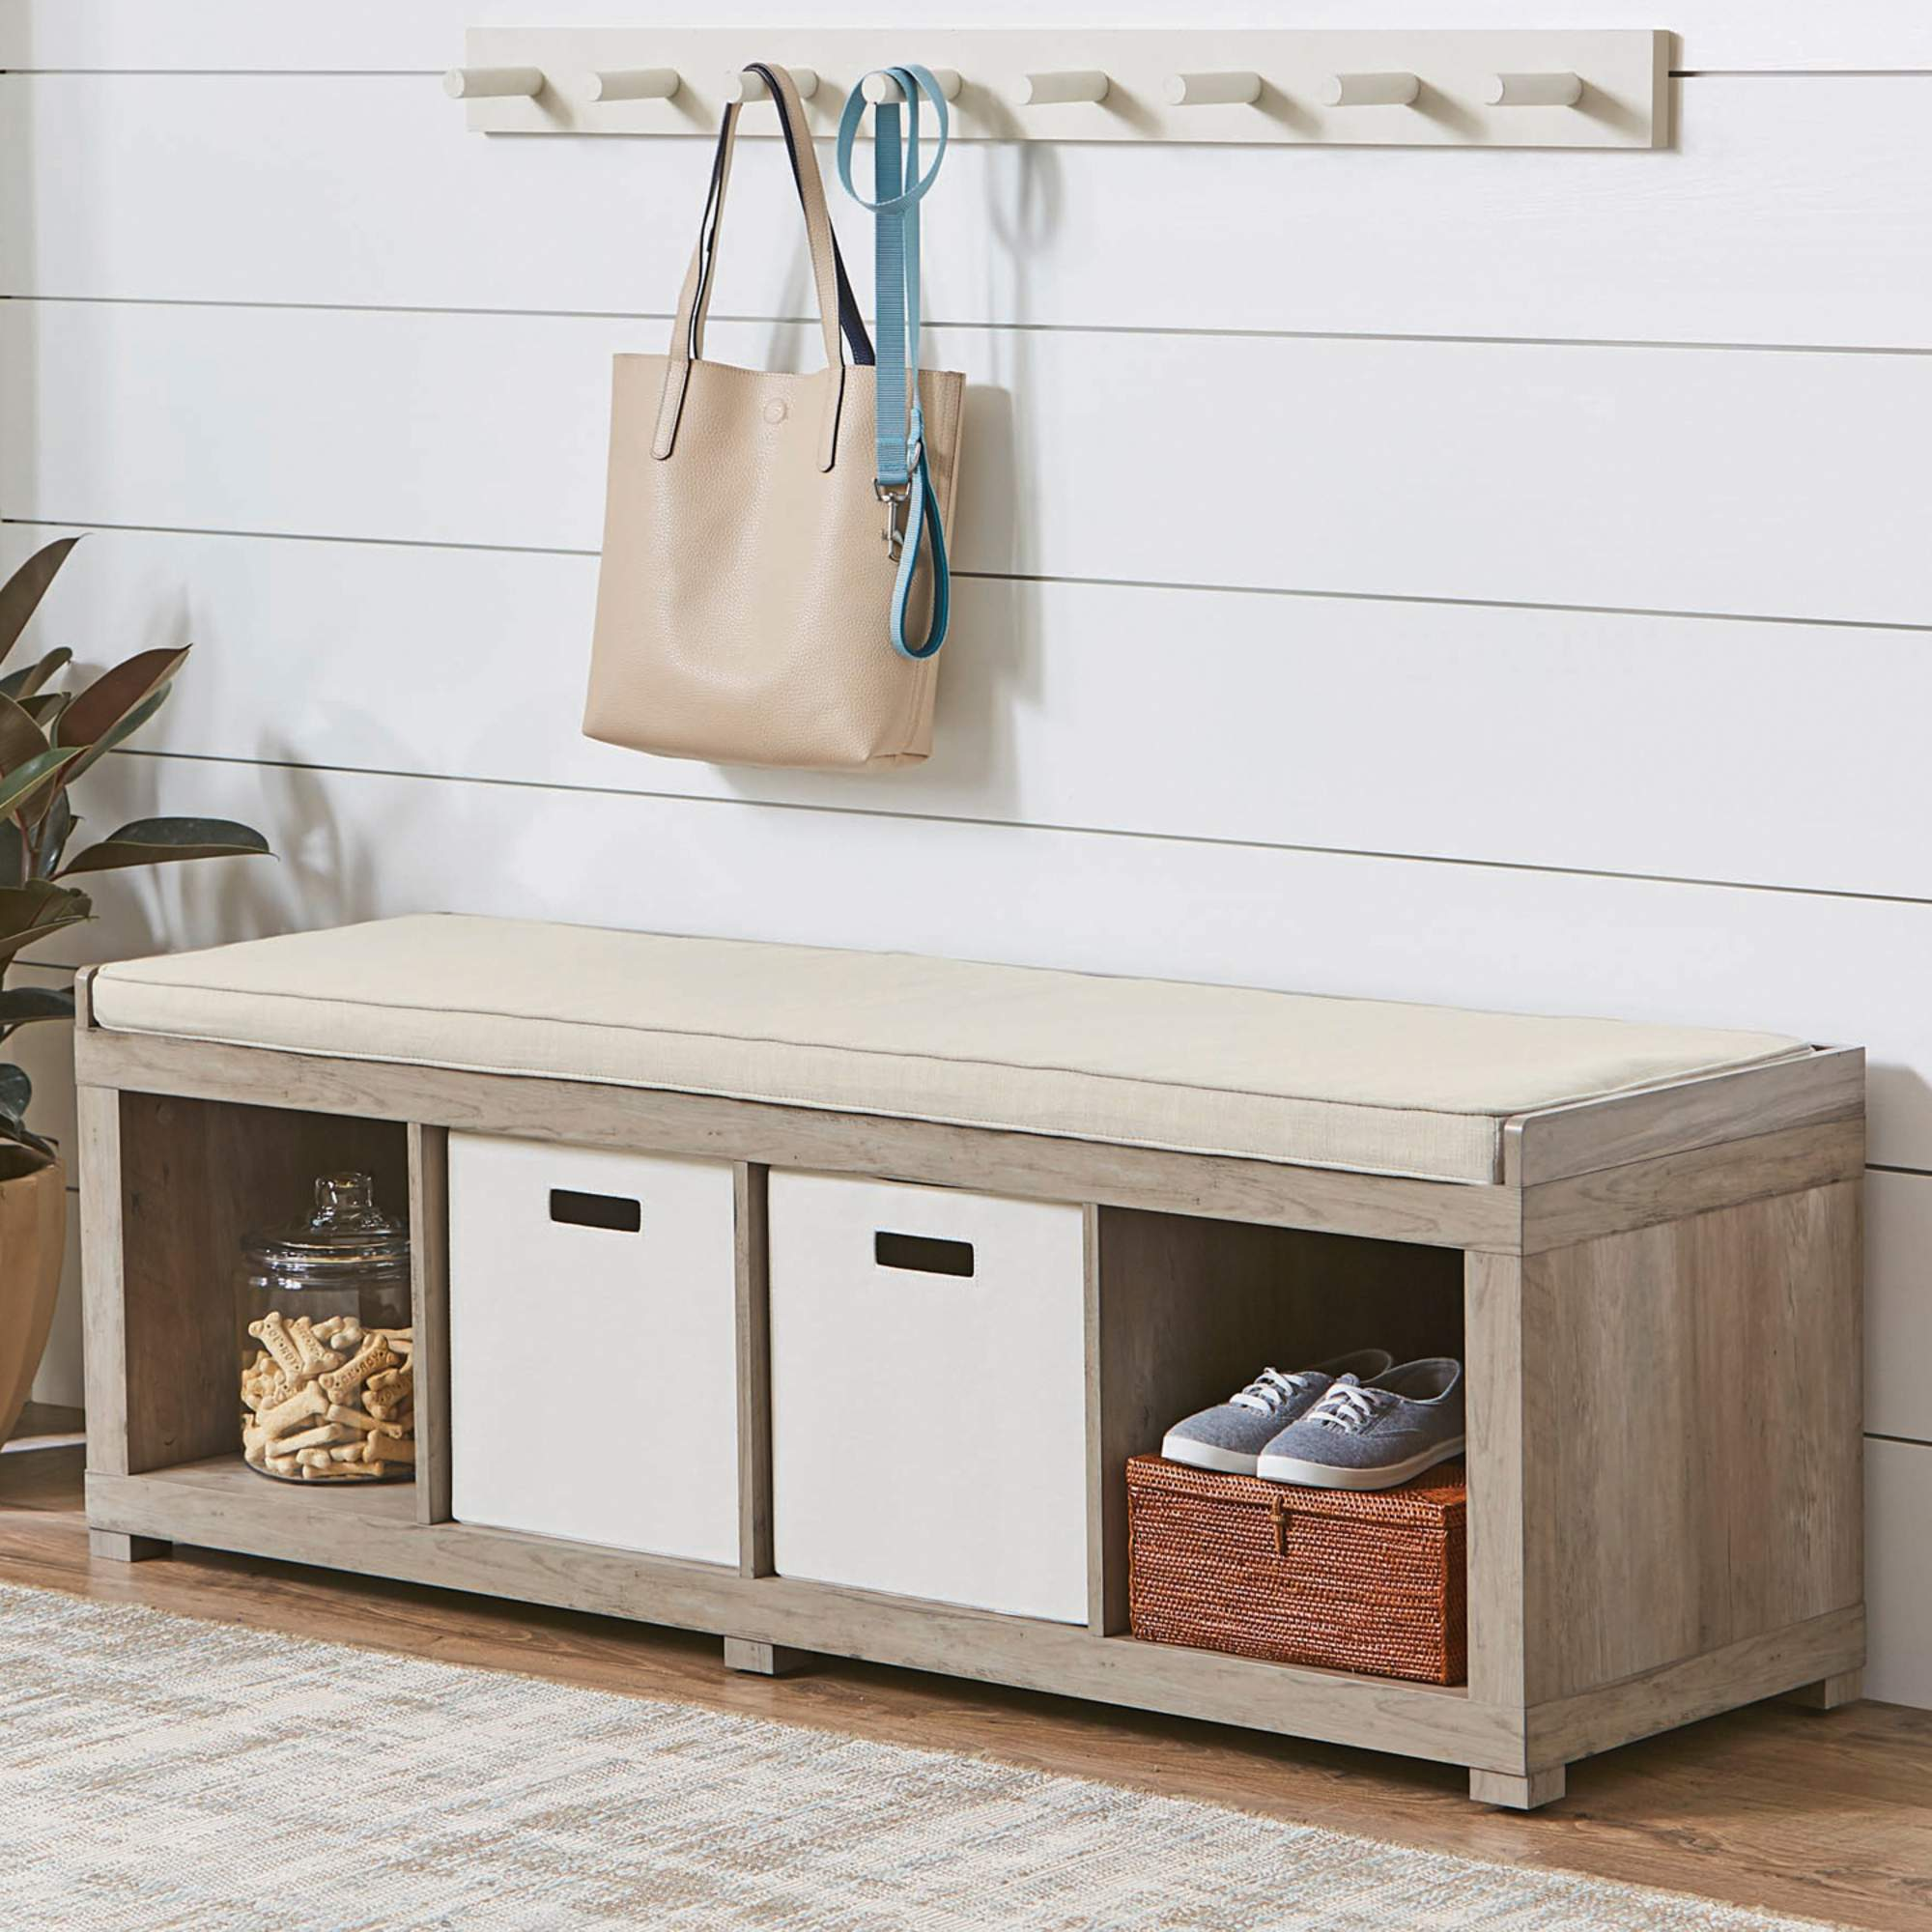 Better Homes and Gardens 4-Cube Organizer Storage Bench, Multiple Finishes